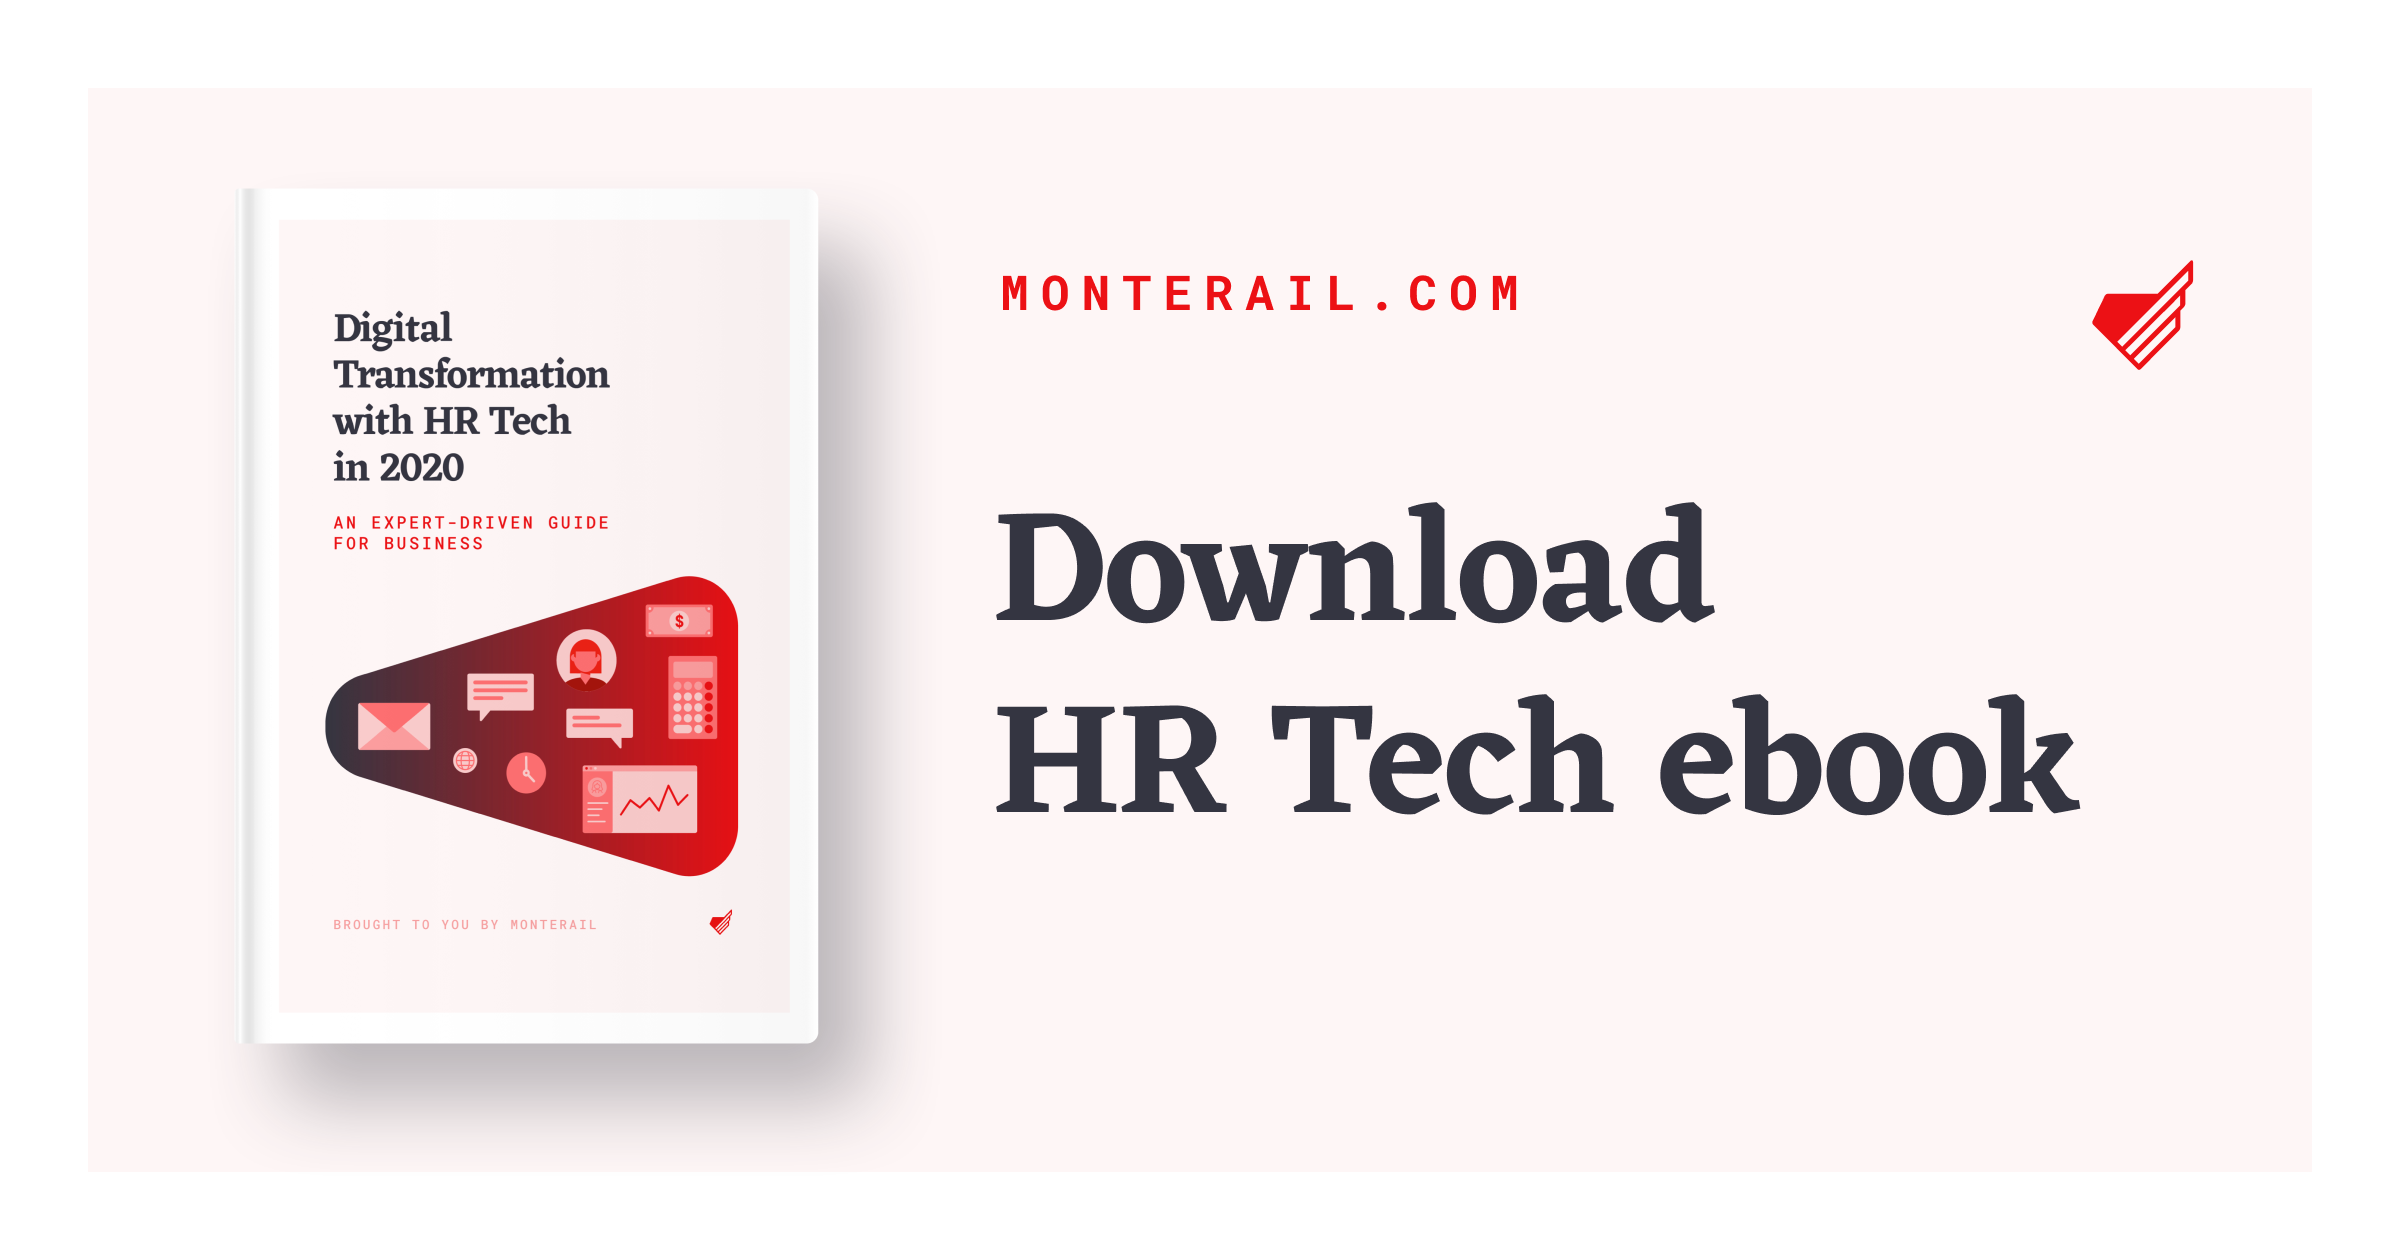 download HR Tech ebook